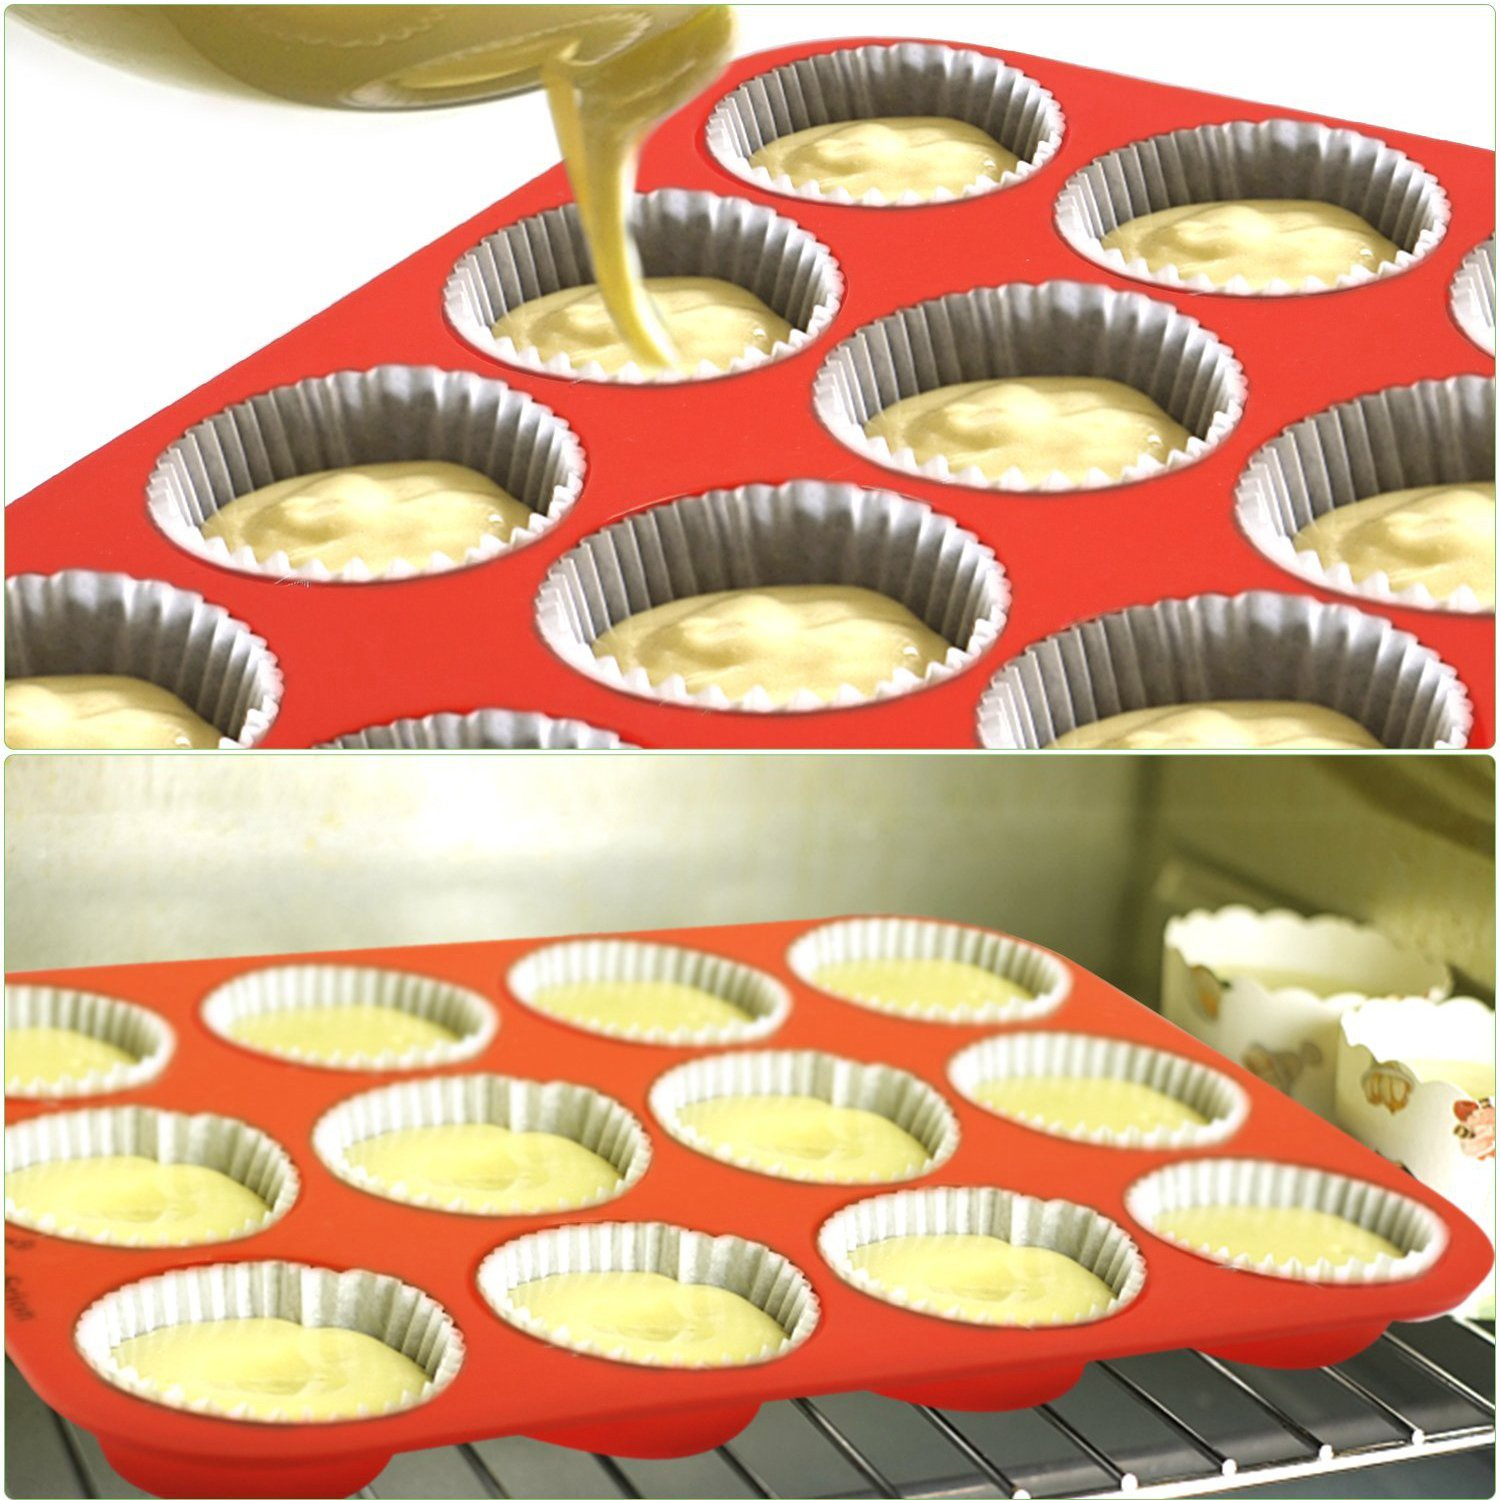 FITNATE Bakeware Silicone Muffin Pan 12 Cup, BPA-free, Non Stick by FITNATE (Image #4)